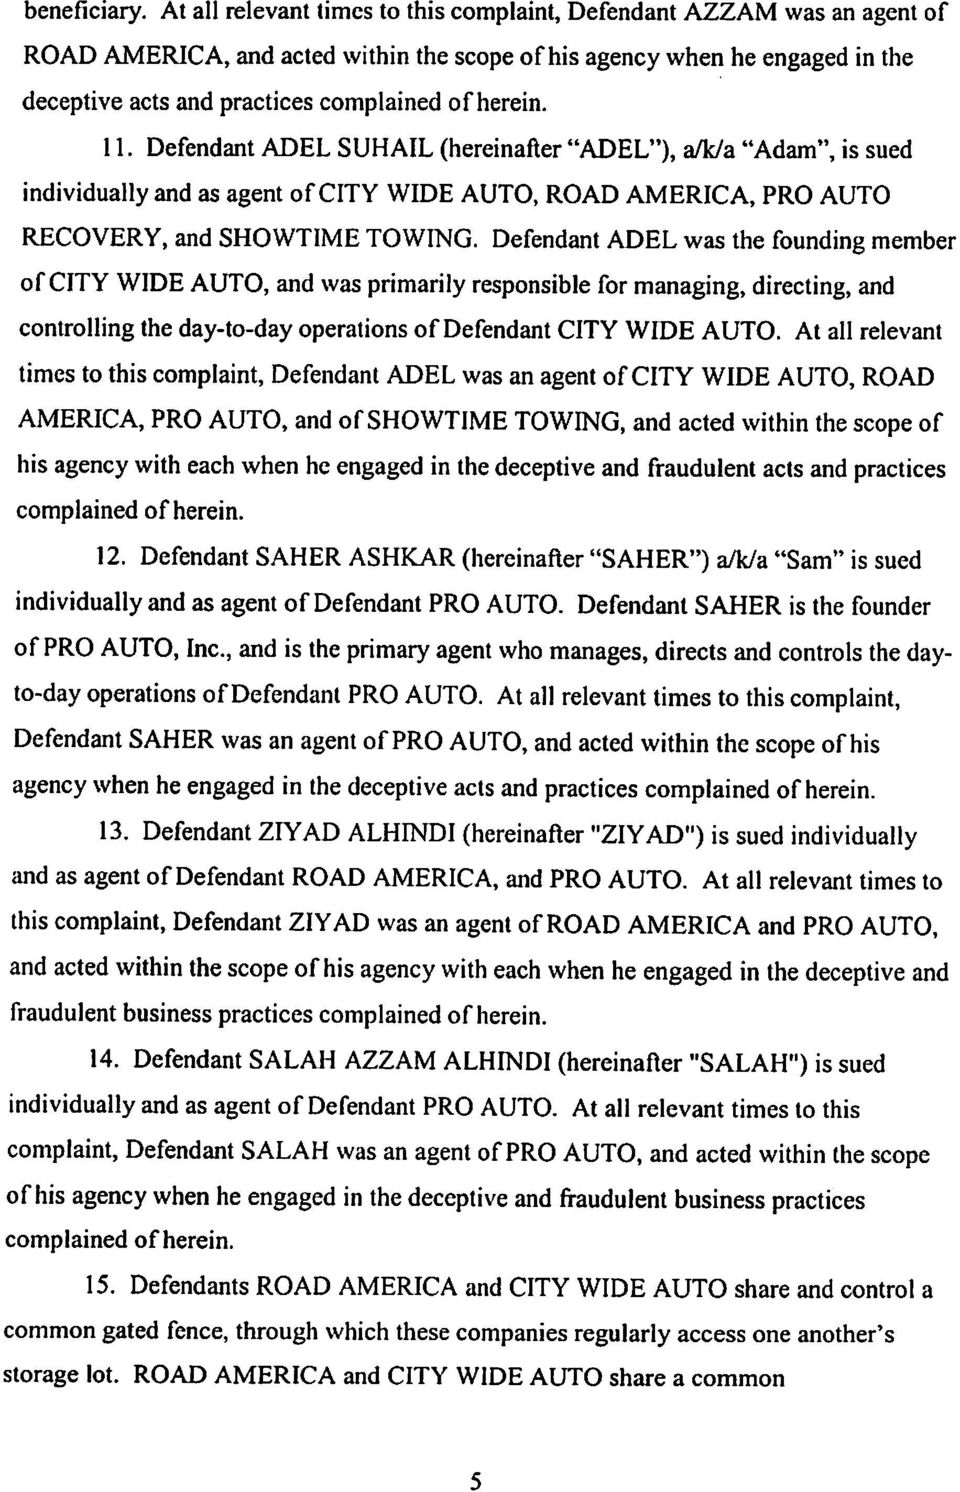 "herein. 11. Defendant ADEL SUHAIL (hereinafter ""ADEL""), a/k/a ""Adam"", is sued individually and as agent of CITY WIDE AUTO, ROAD AMERICA, PRO AUTO RECOVERY, and SHOWTIME TOWING."